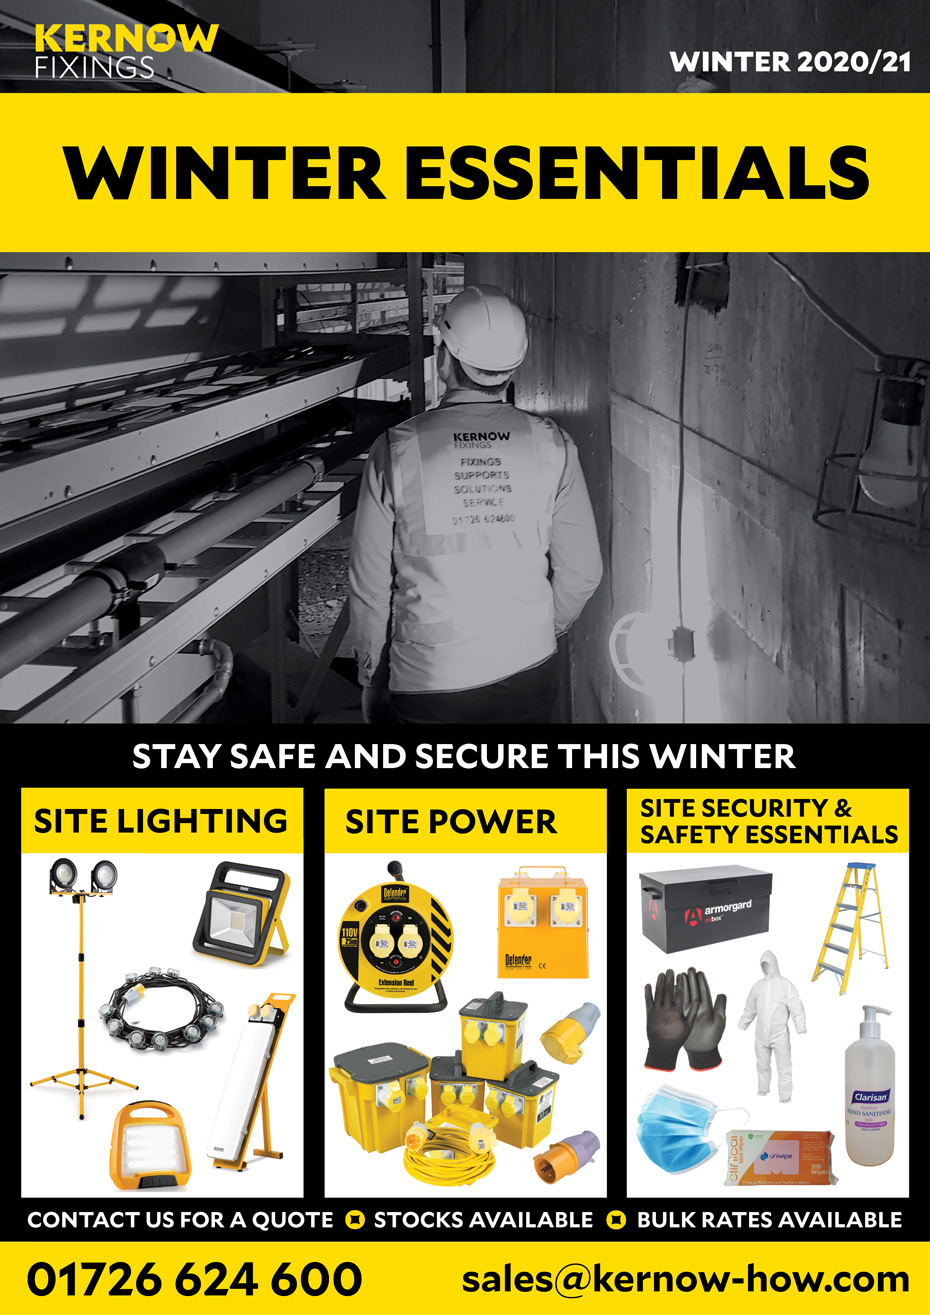 Winter Site Lighting & Power Essentials 2020-21